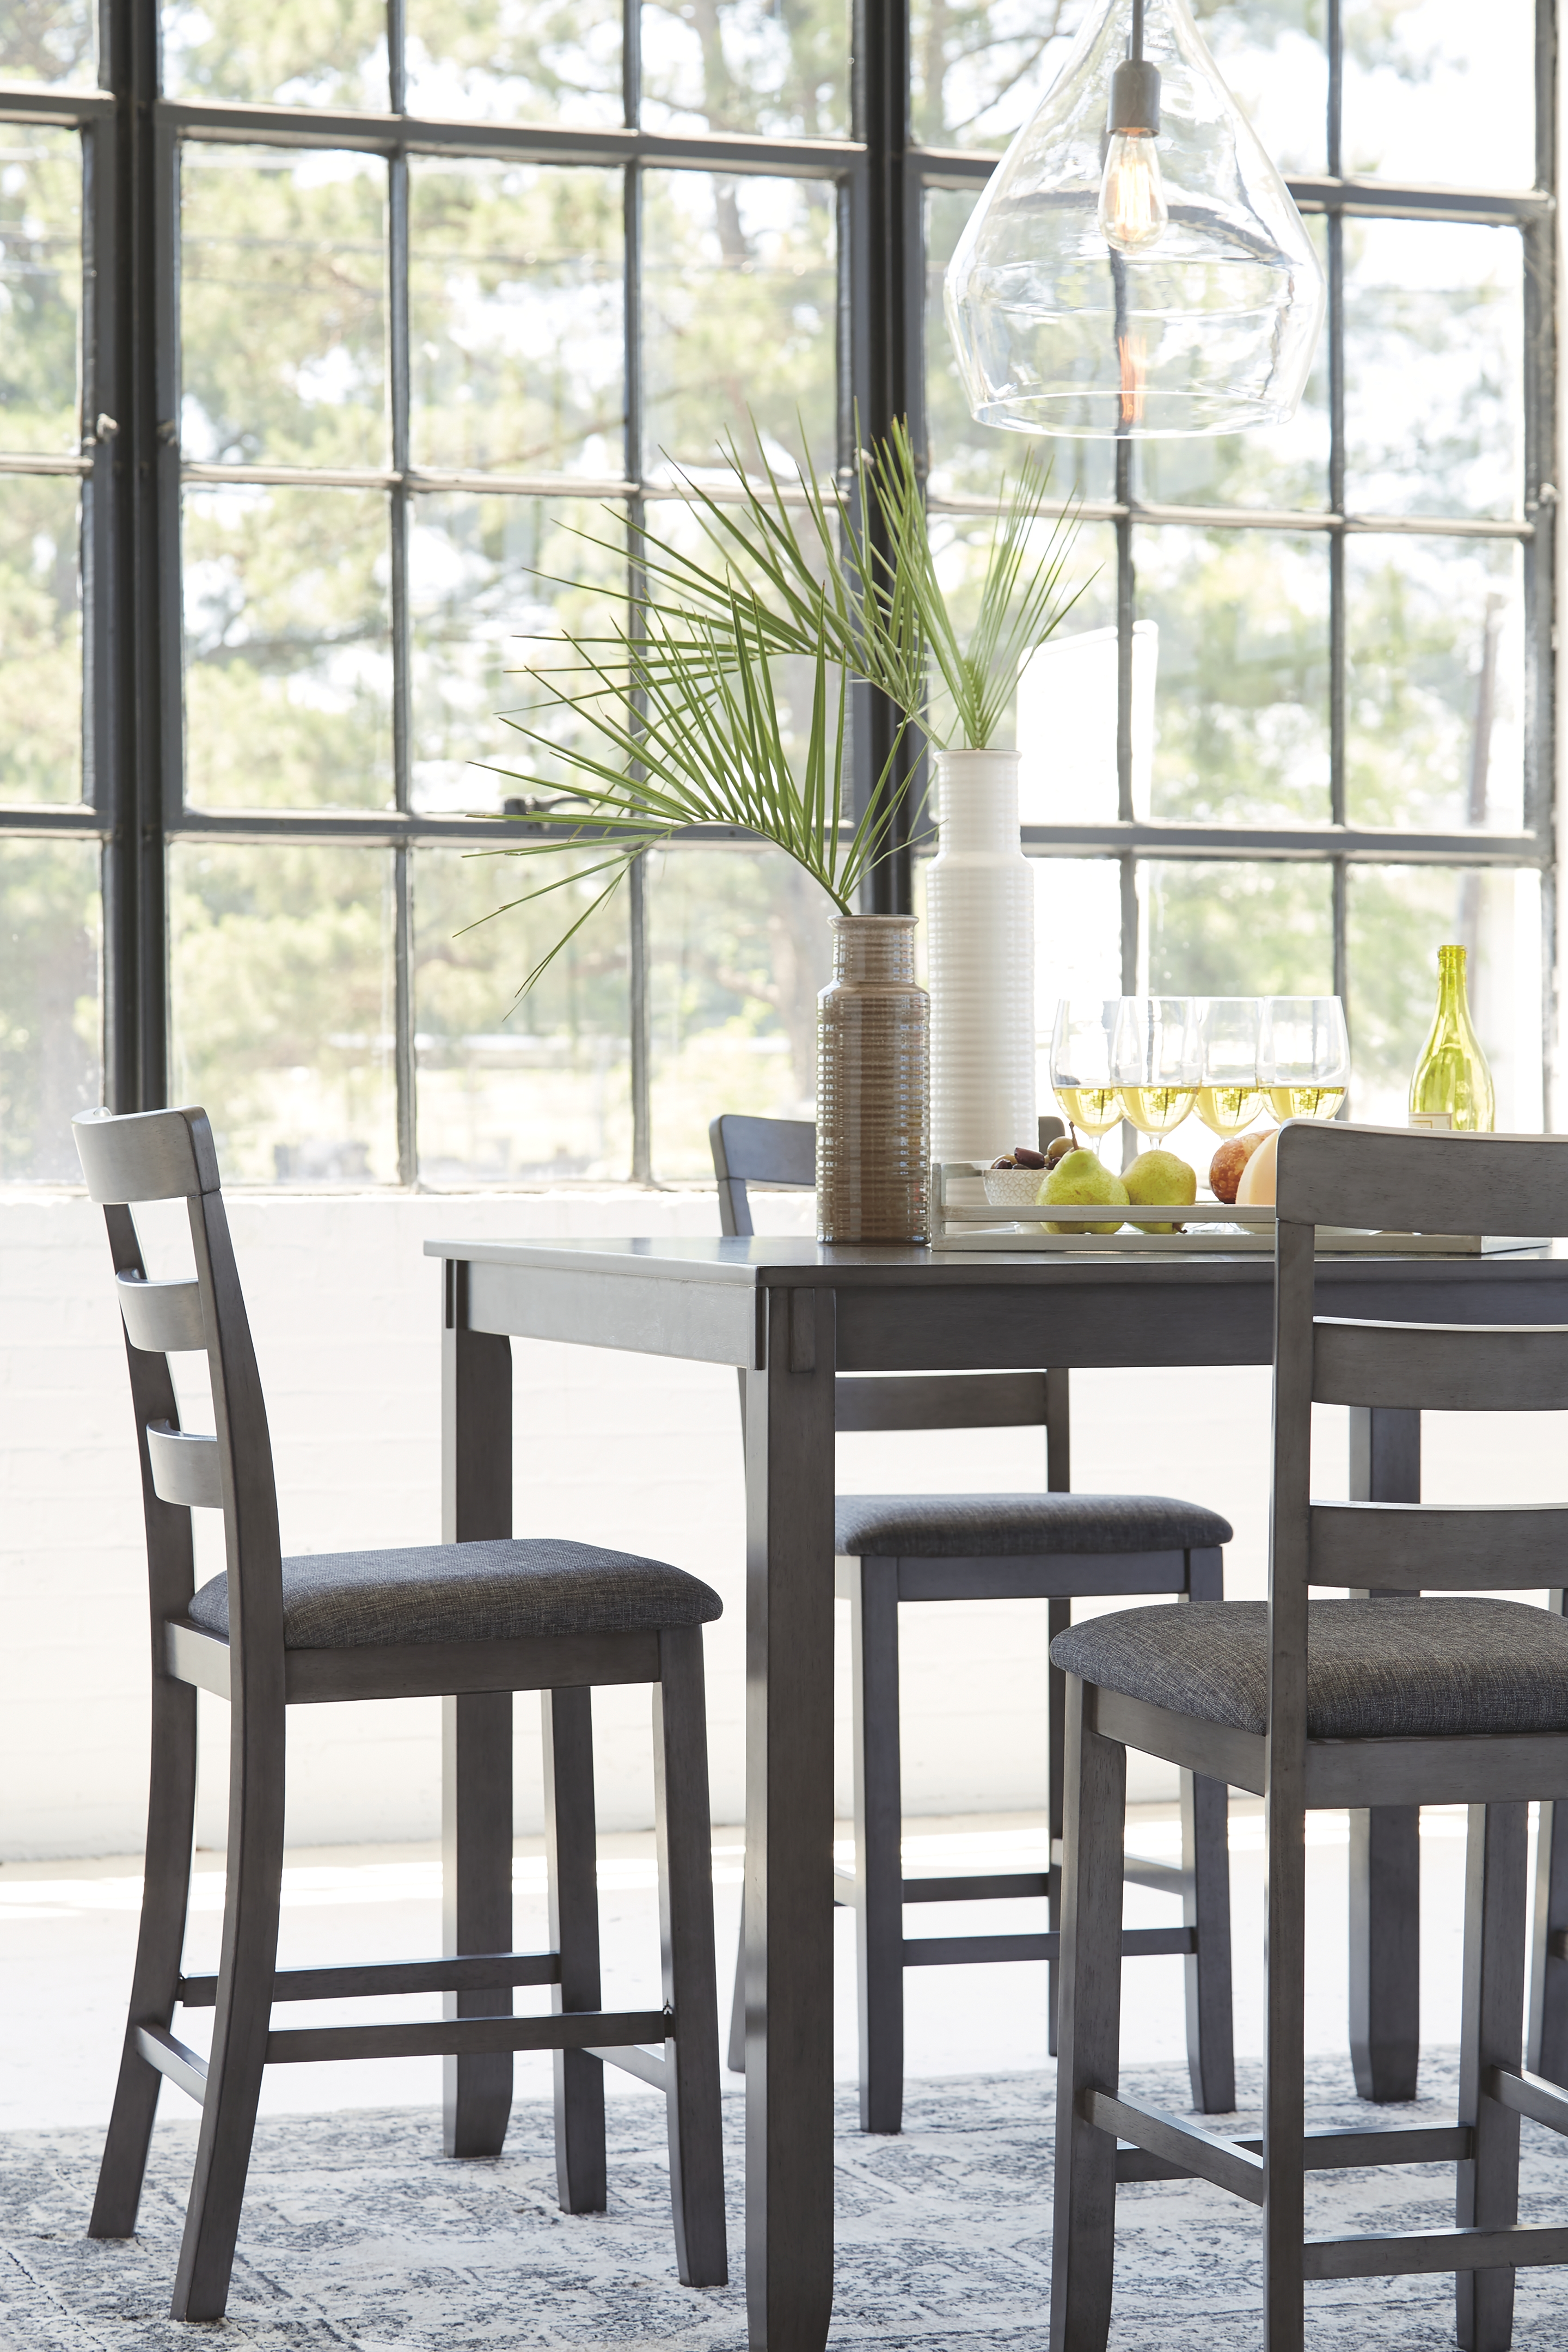 Bridson Counter Height Dining Room Table And Bar Stools Set Of 5 By Signature Design By Ashley D383 223 Wright Furniture Flooring